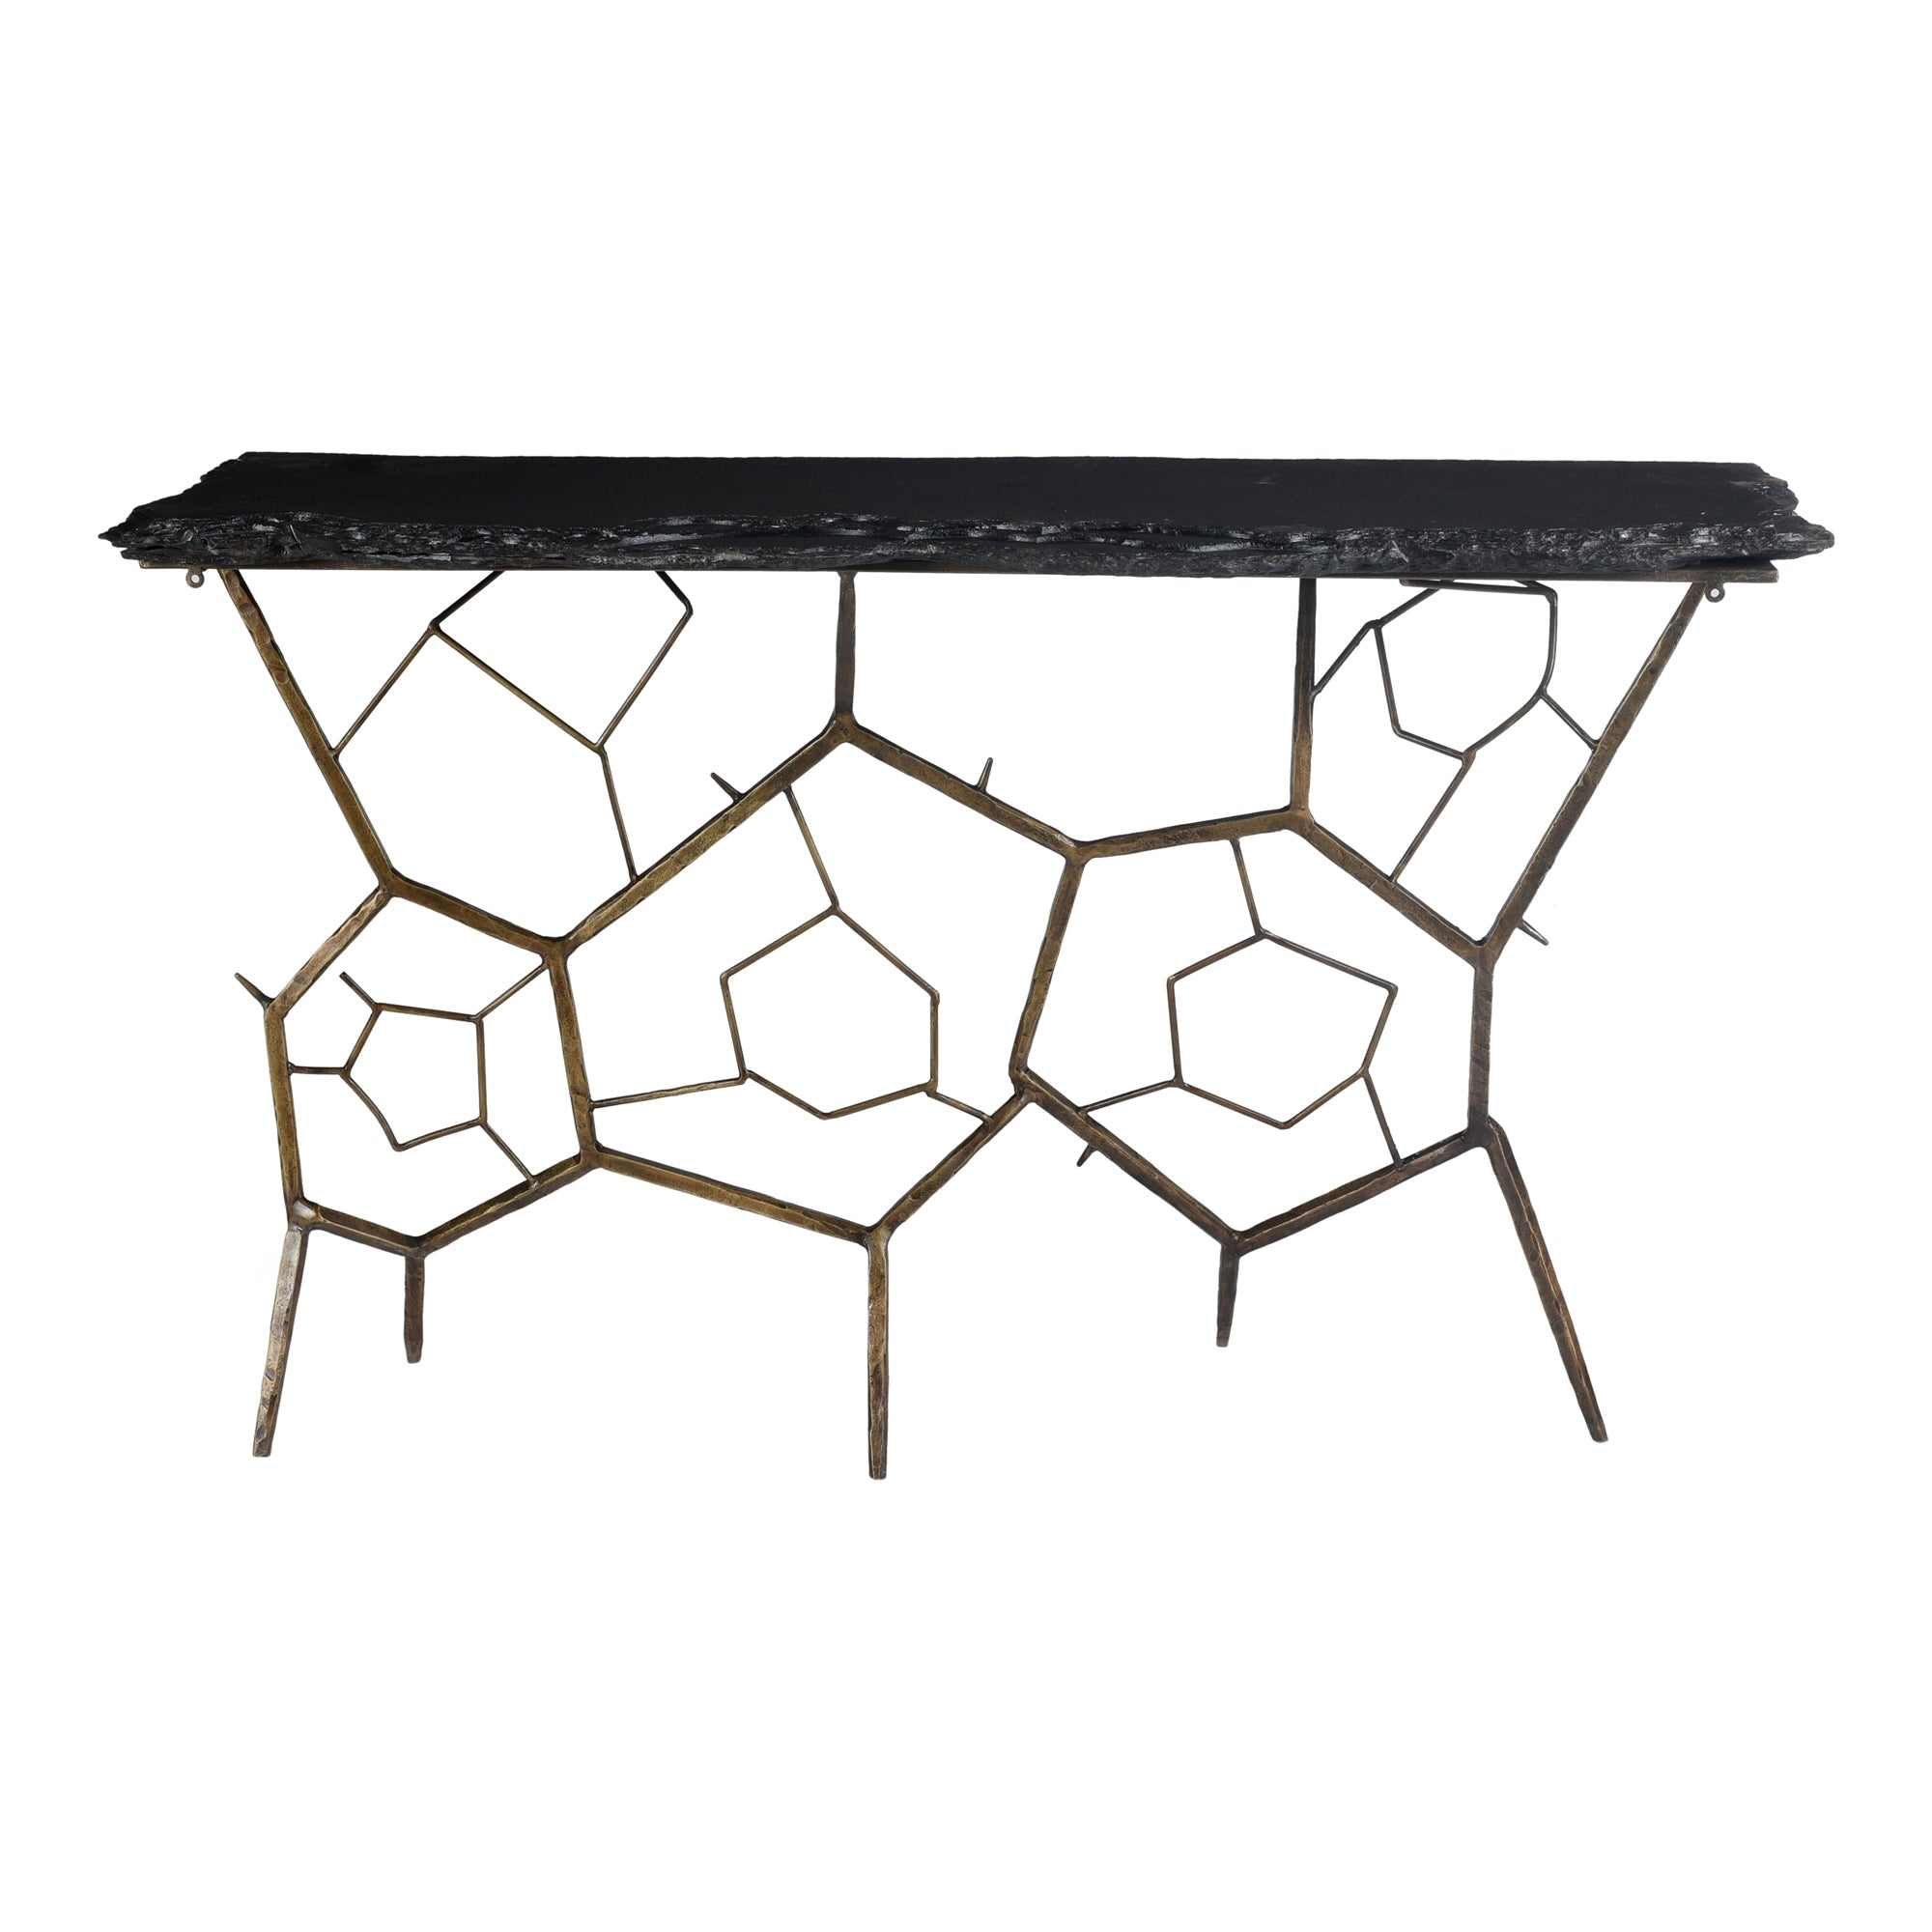 Nate slate console table, grey - Tops-Dress